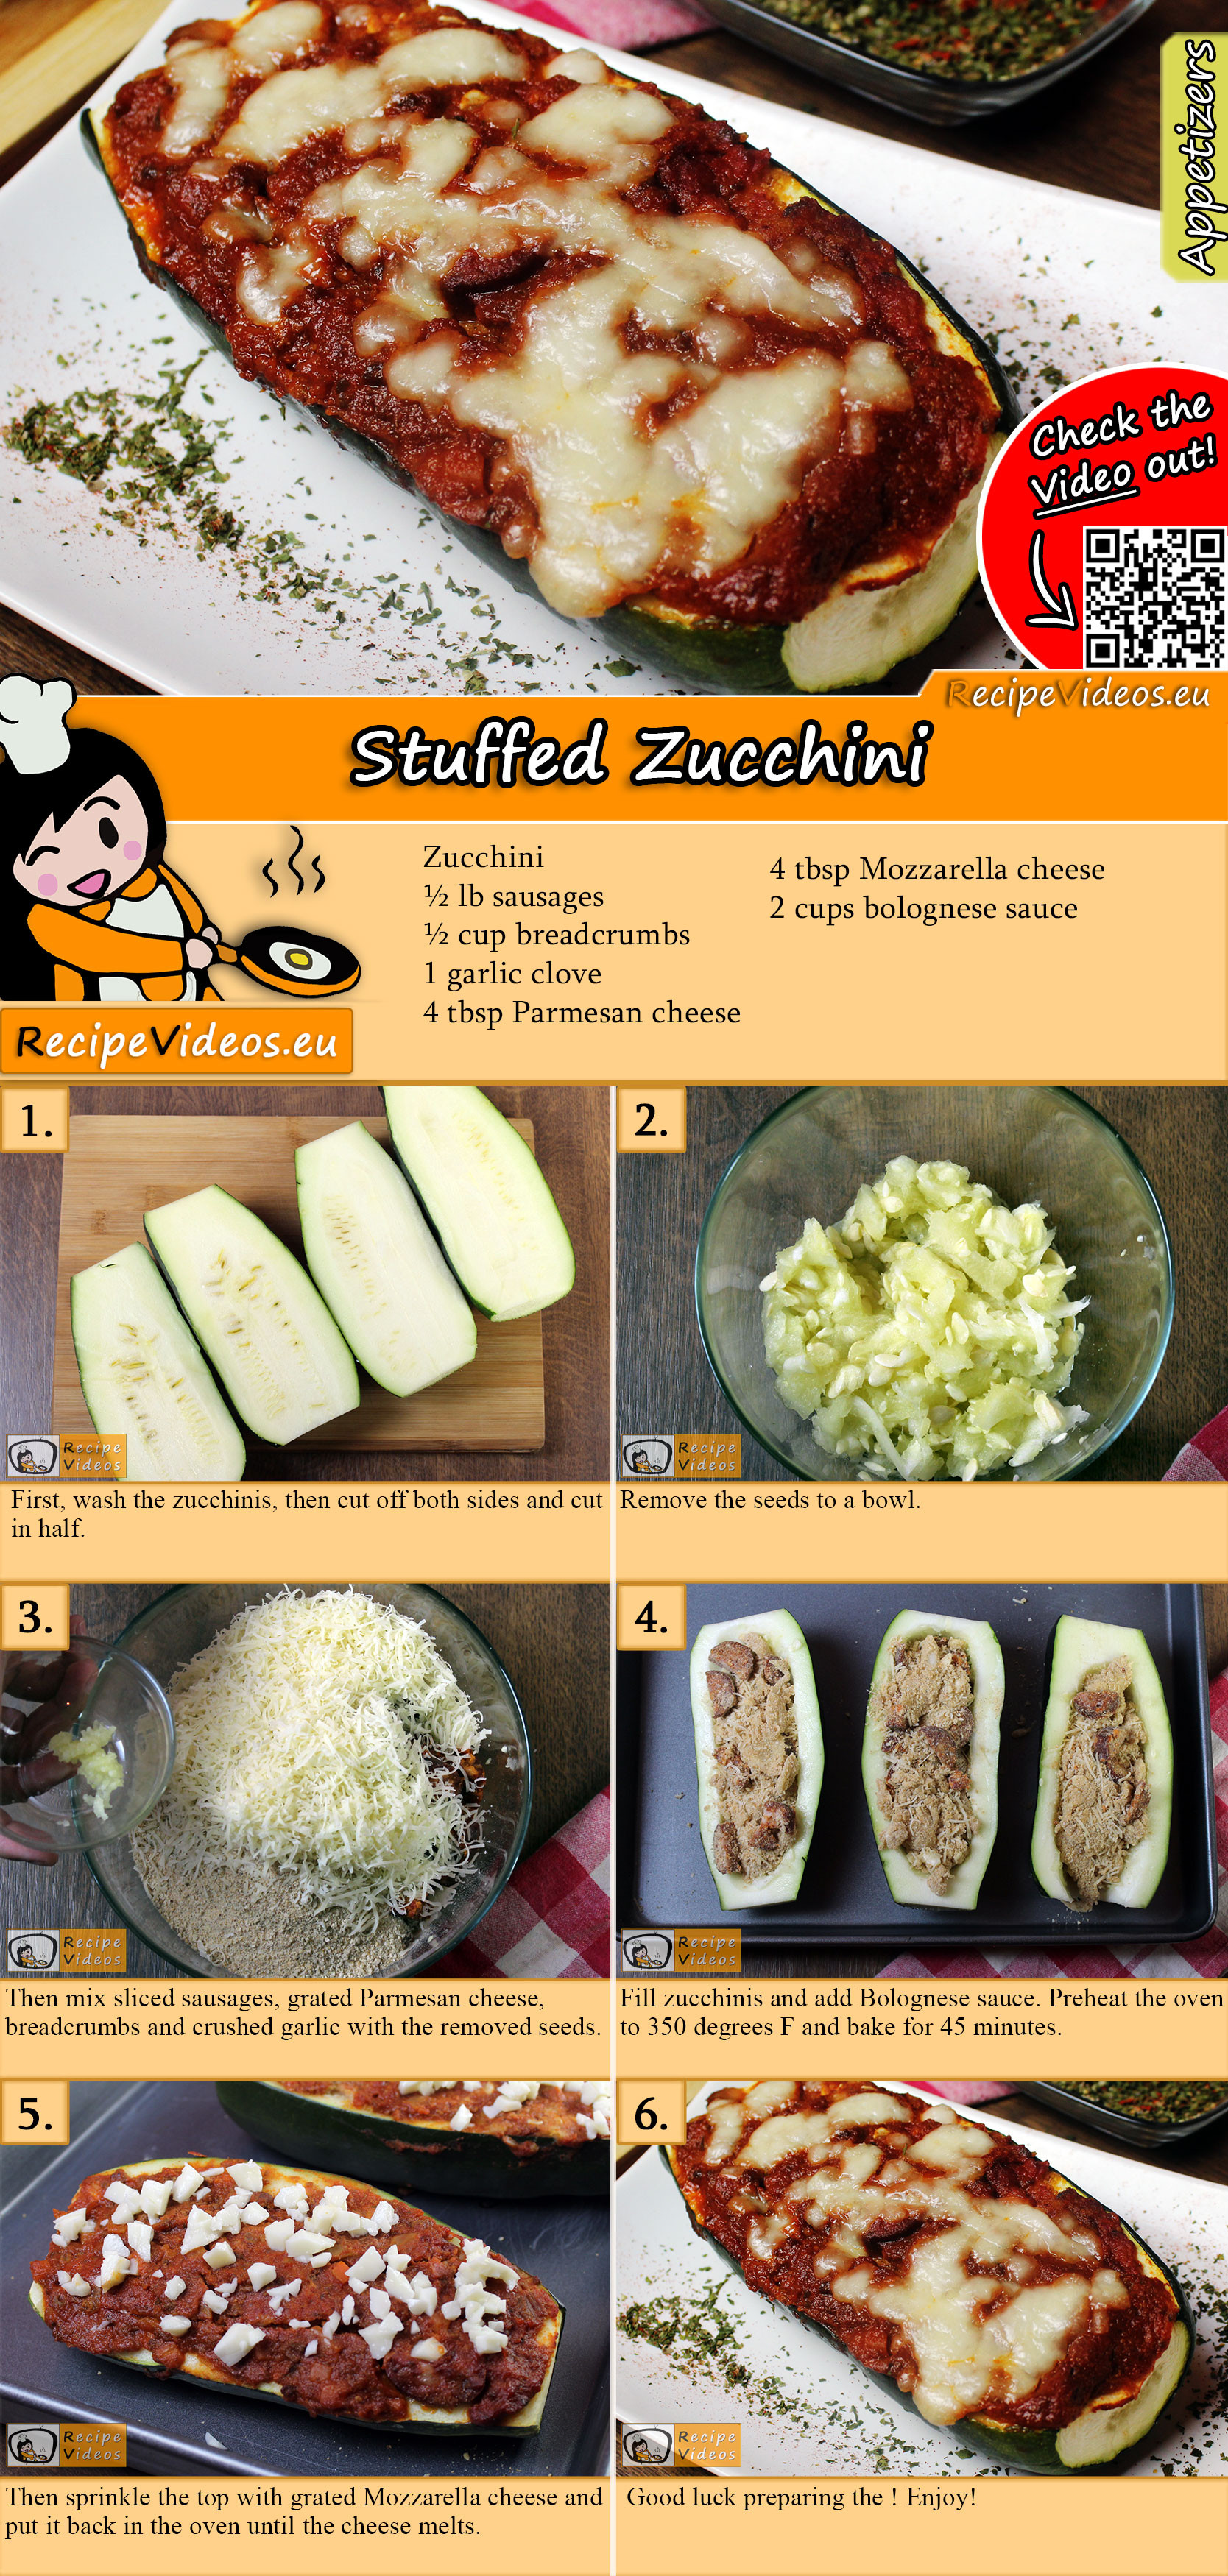 Stuffed zucchini recipe with video